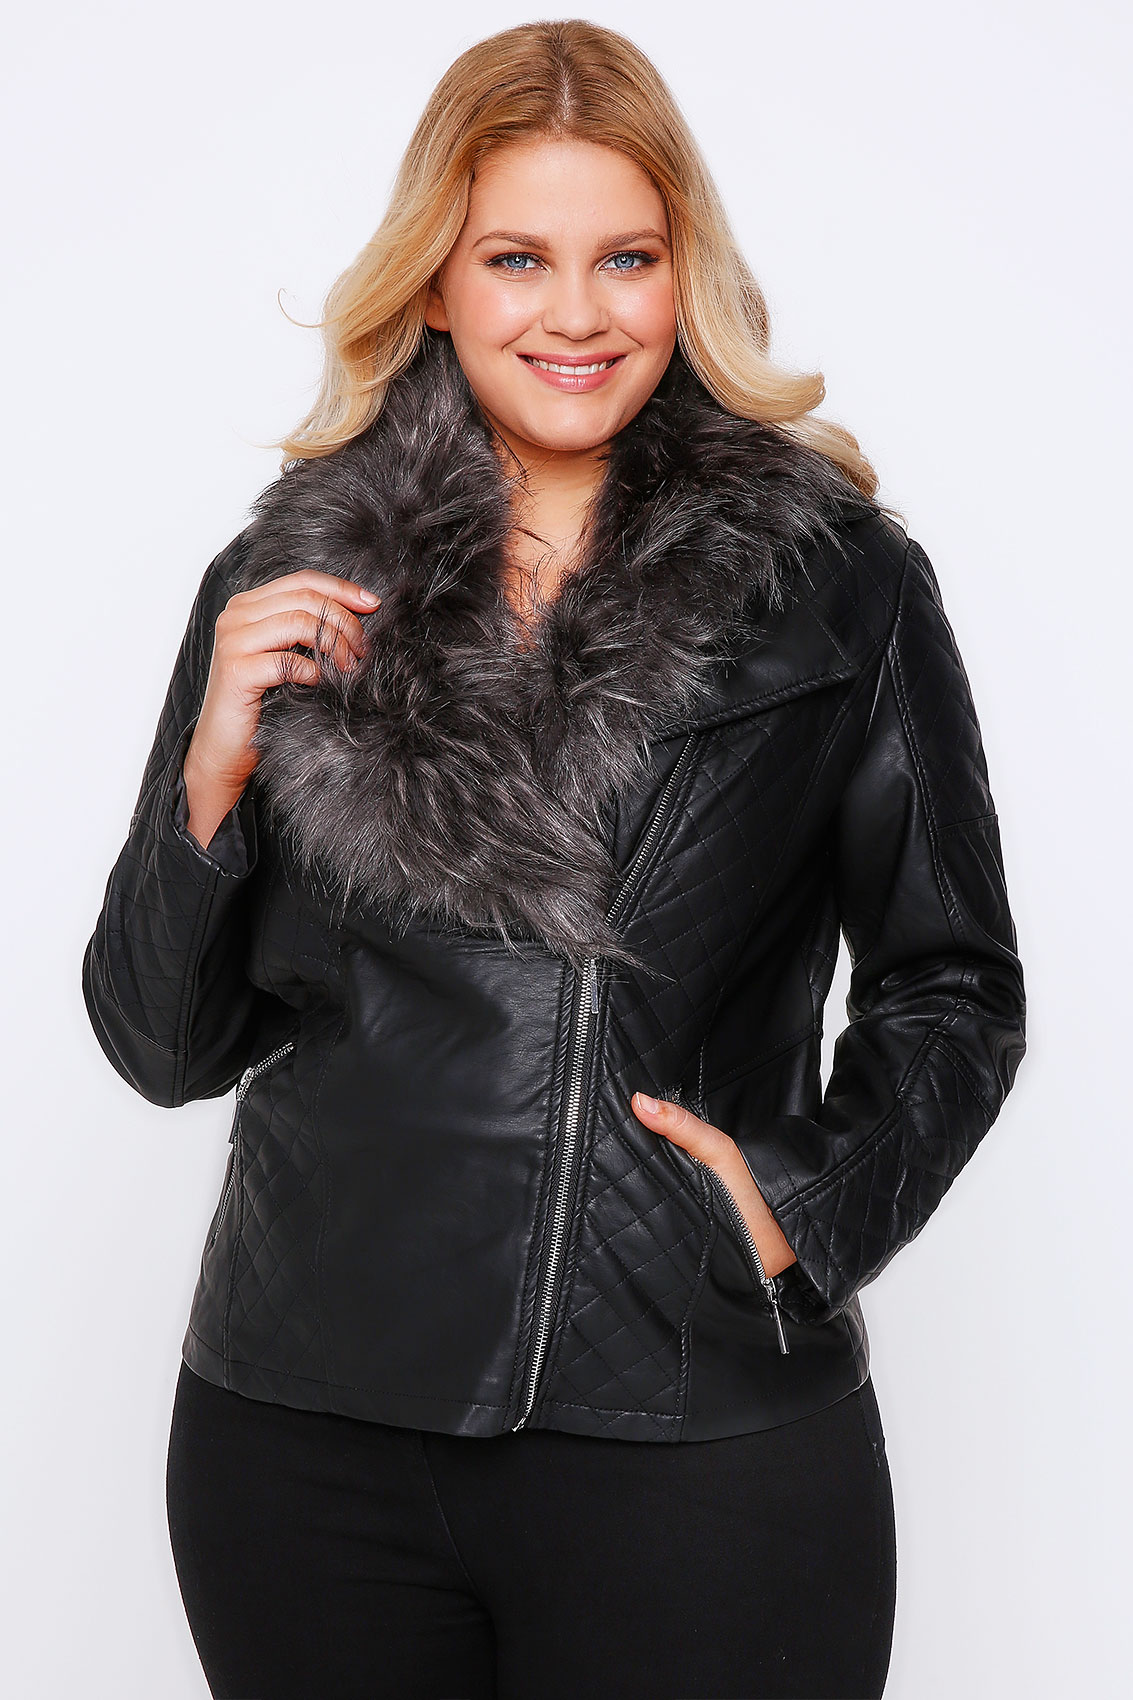 Looking for great fashion details like hoods, multiple zippers, faux fur trim? We've got them, in sizes XS to 6X and One Size. Shop leather, faux fur, down, classic wool or water resistant nylon for trenches, moto jackets, hoodies and more.